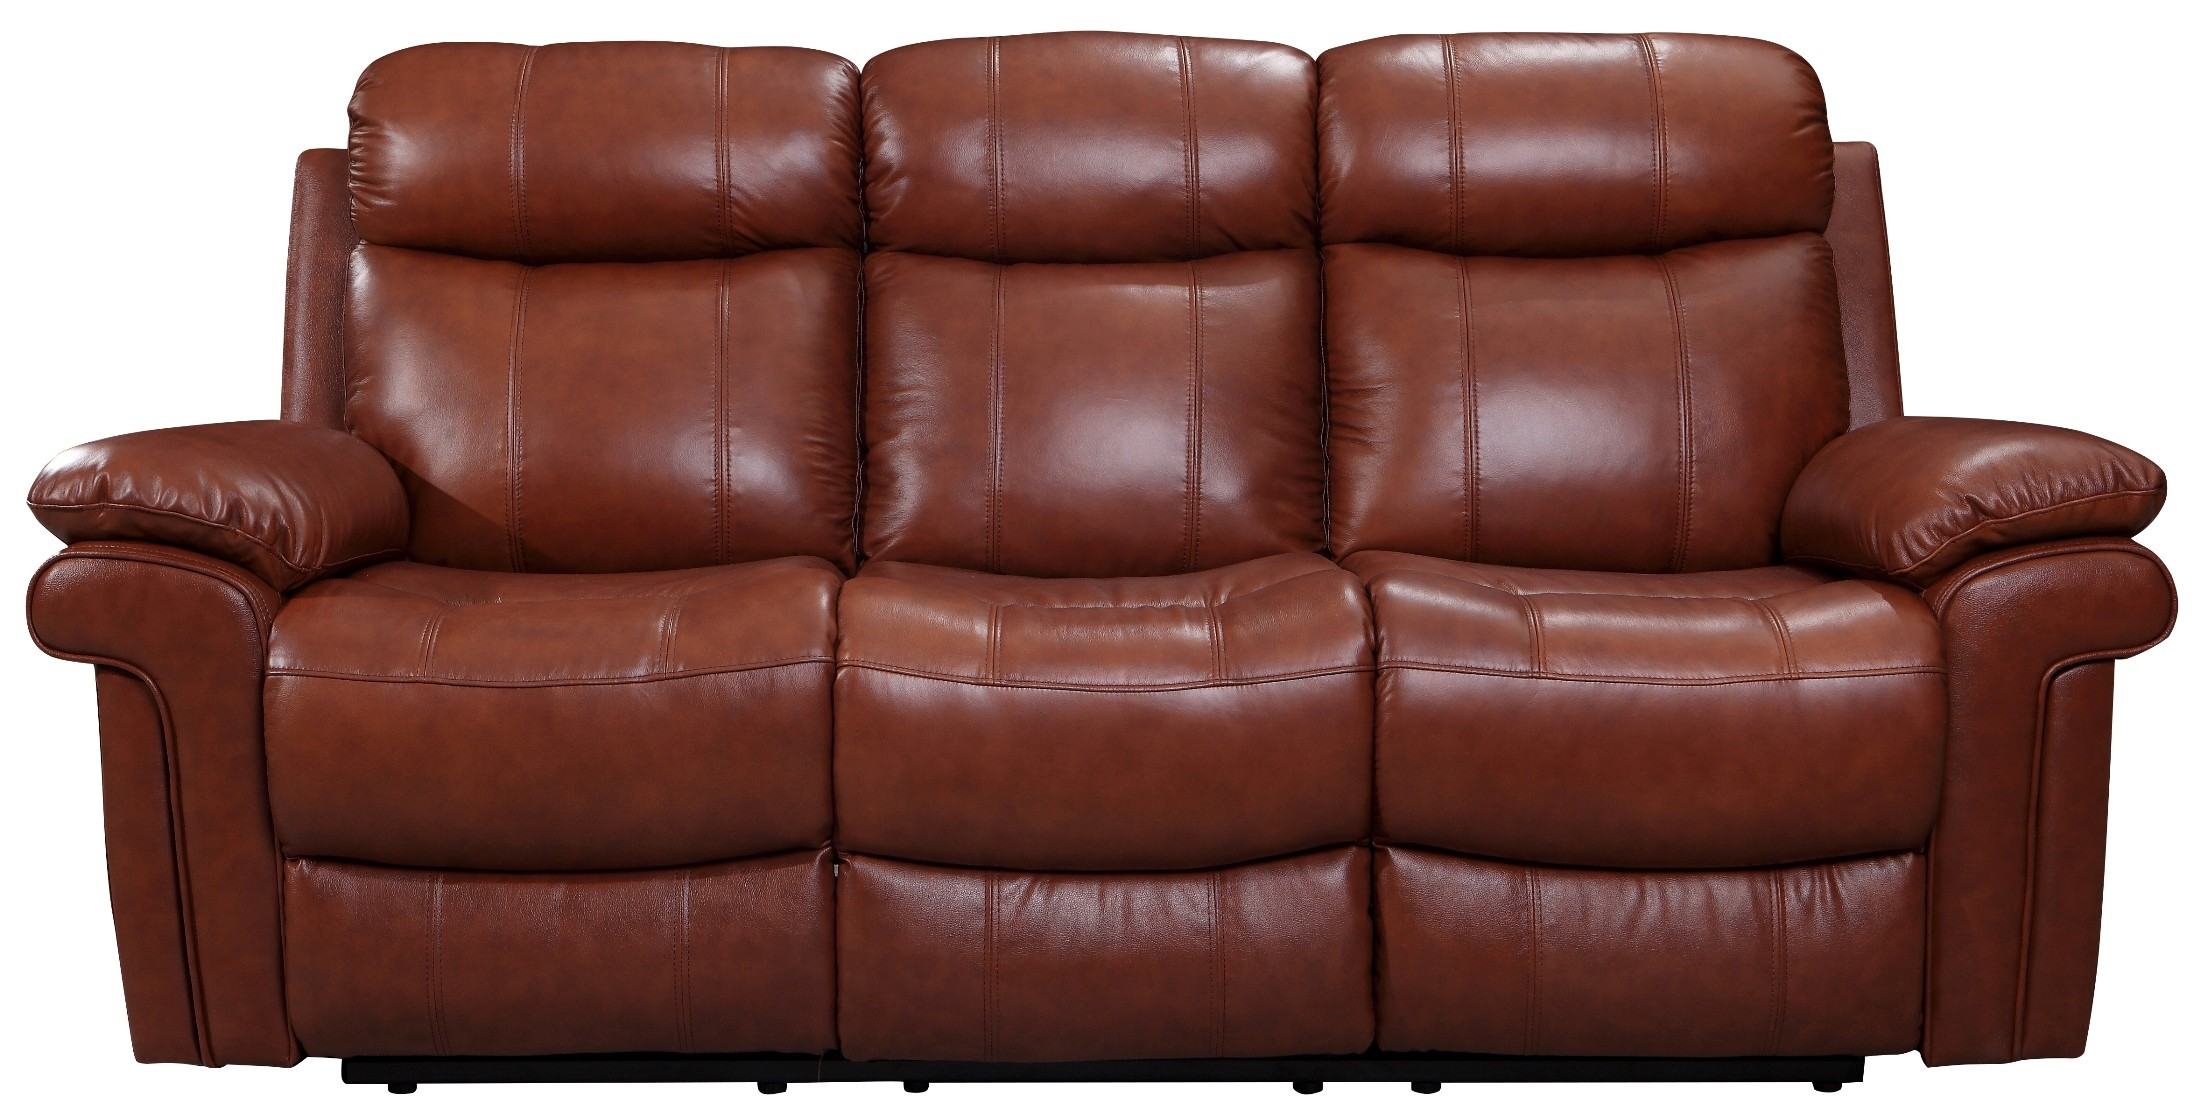 Joplin saddle leather power reclining sofa 1555 e2117 for Affordable furniture 3 piece sectional in wyoming saddle